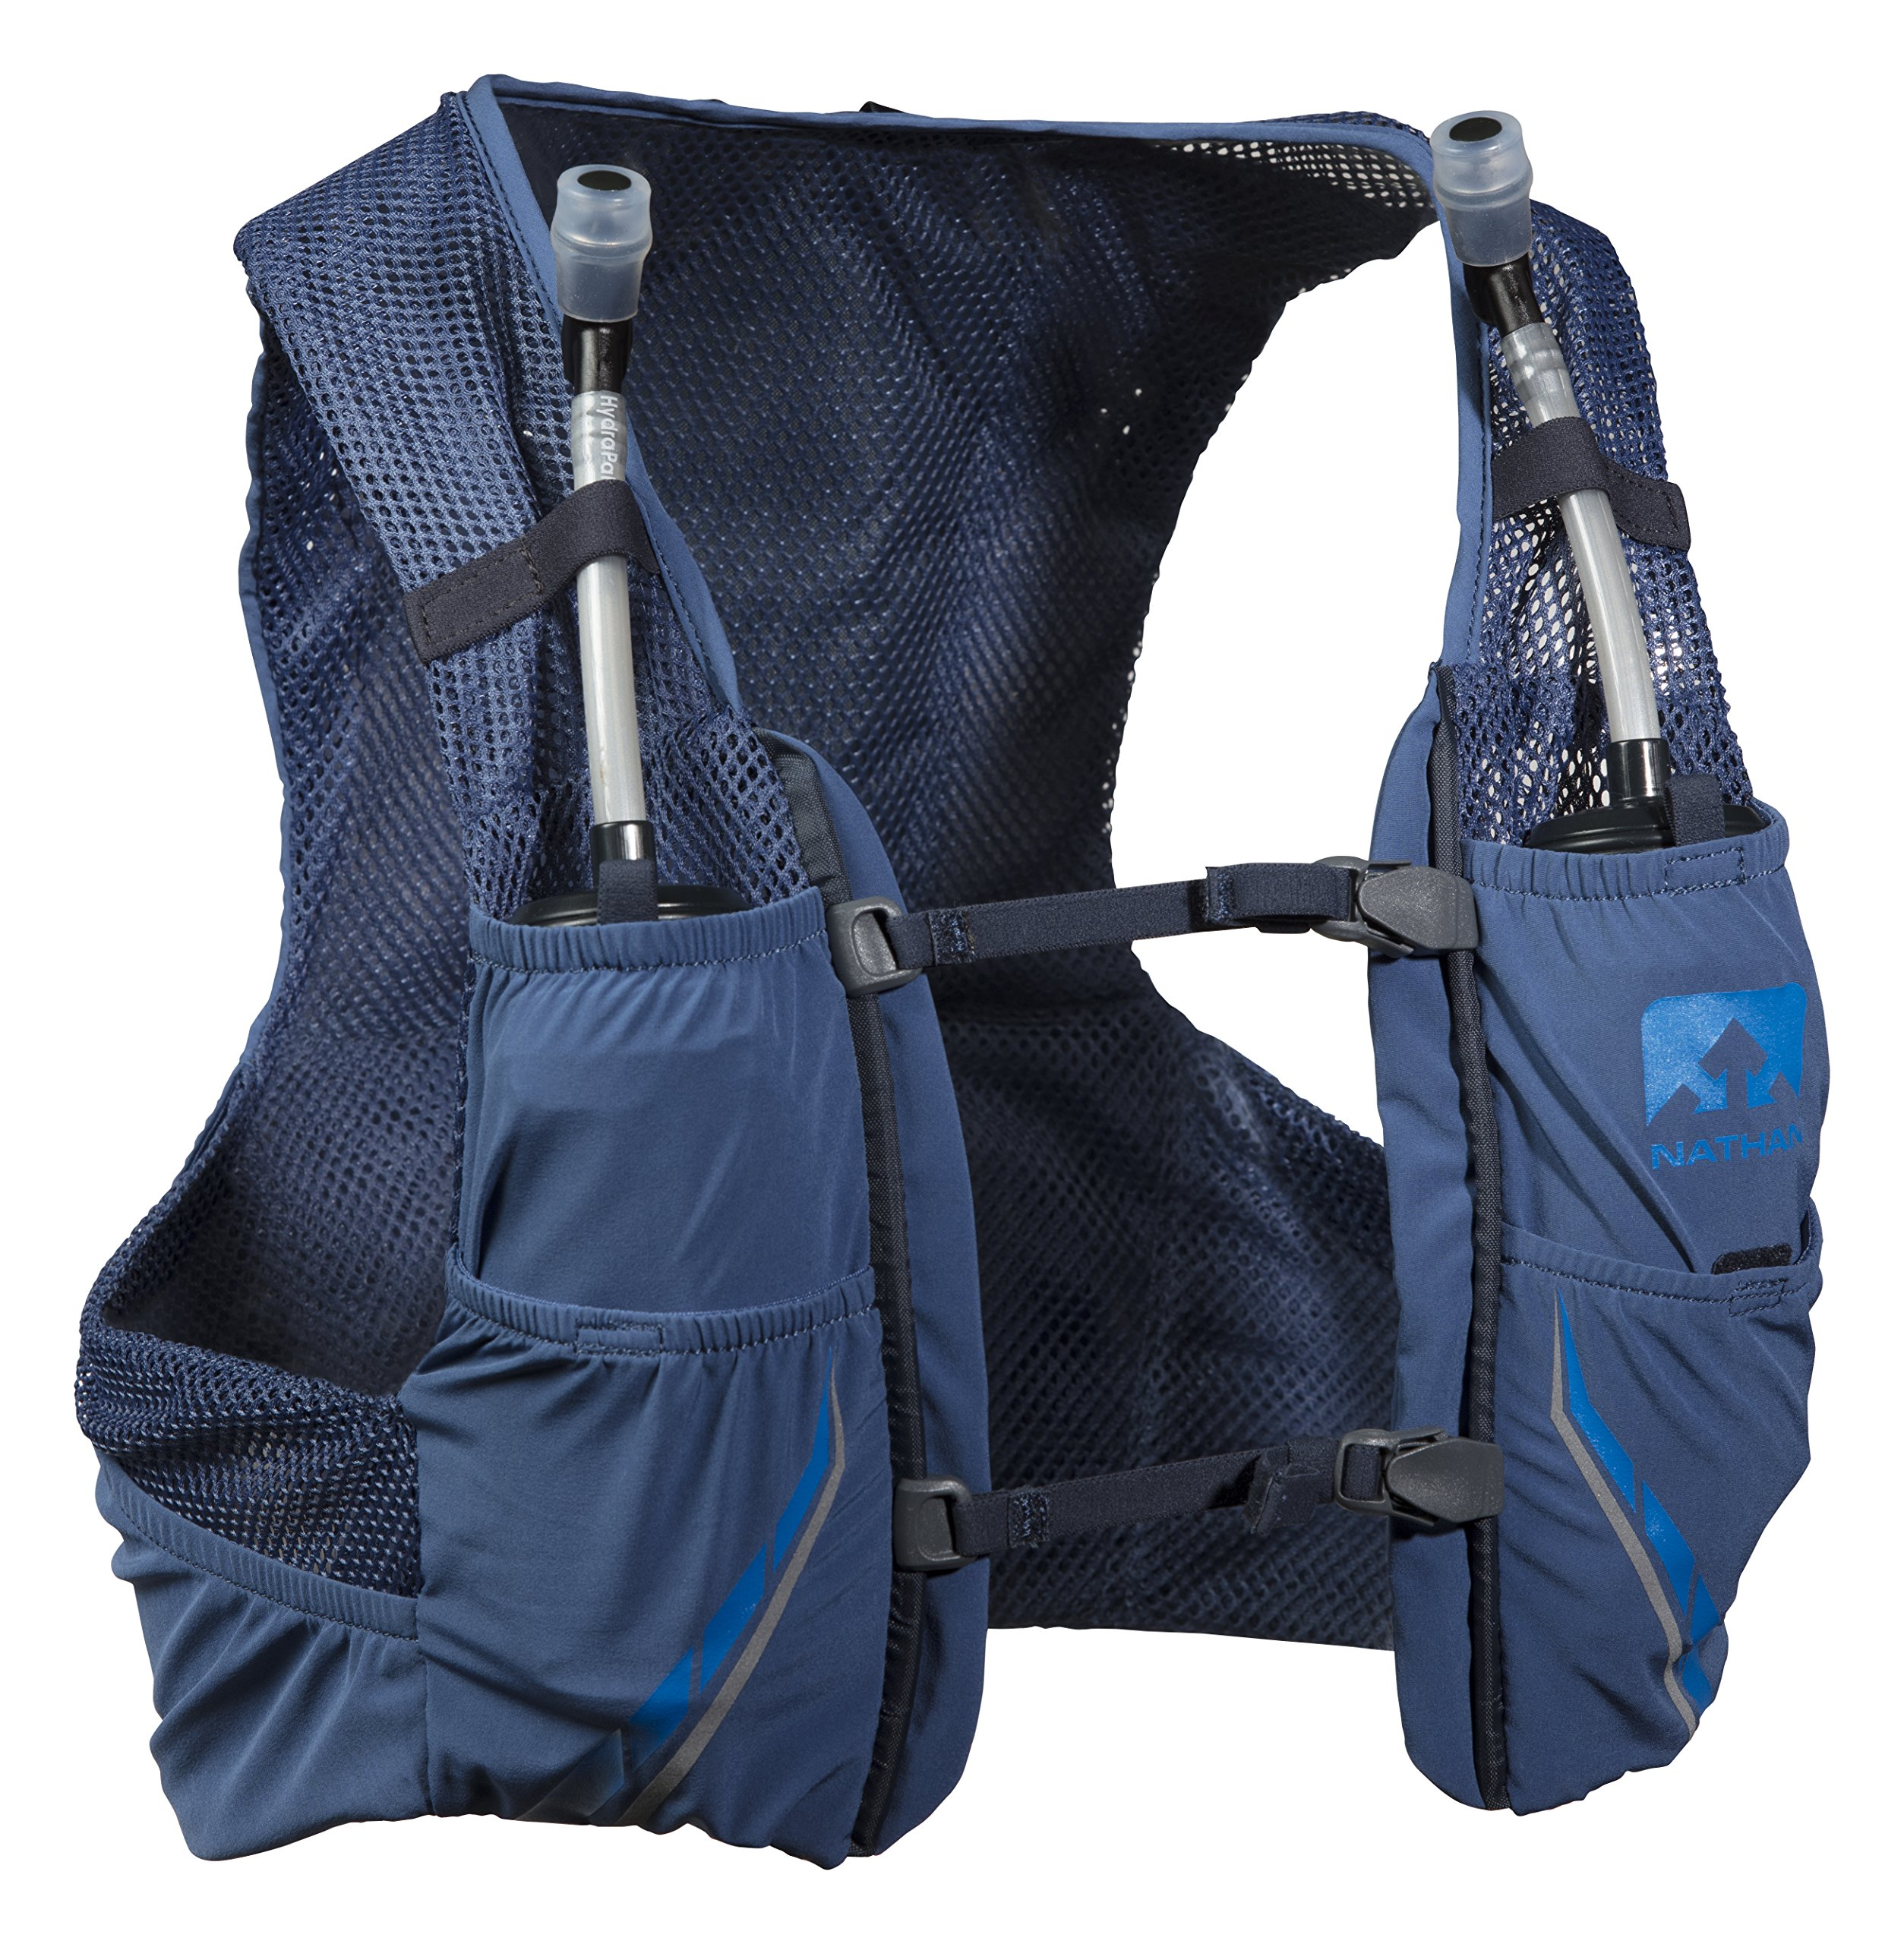 Nathan NS4544-0377-34 Male 2.5L Running Hydration Packs, True Navy/Blue Nights, Large by Nathan (Image #1)